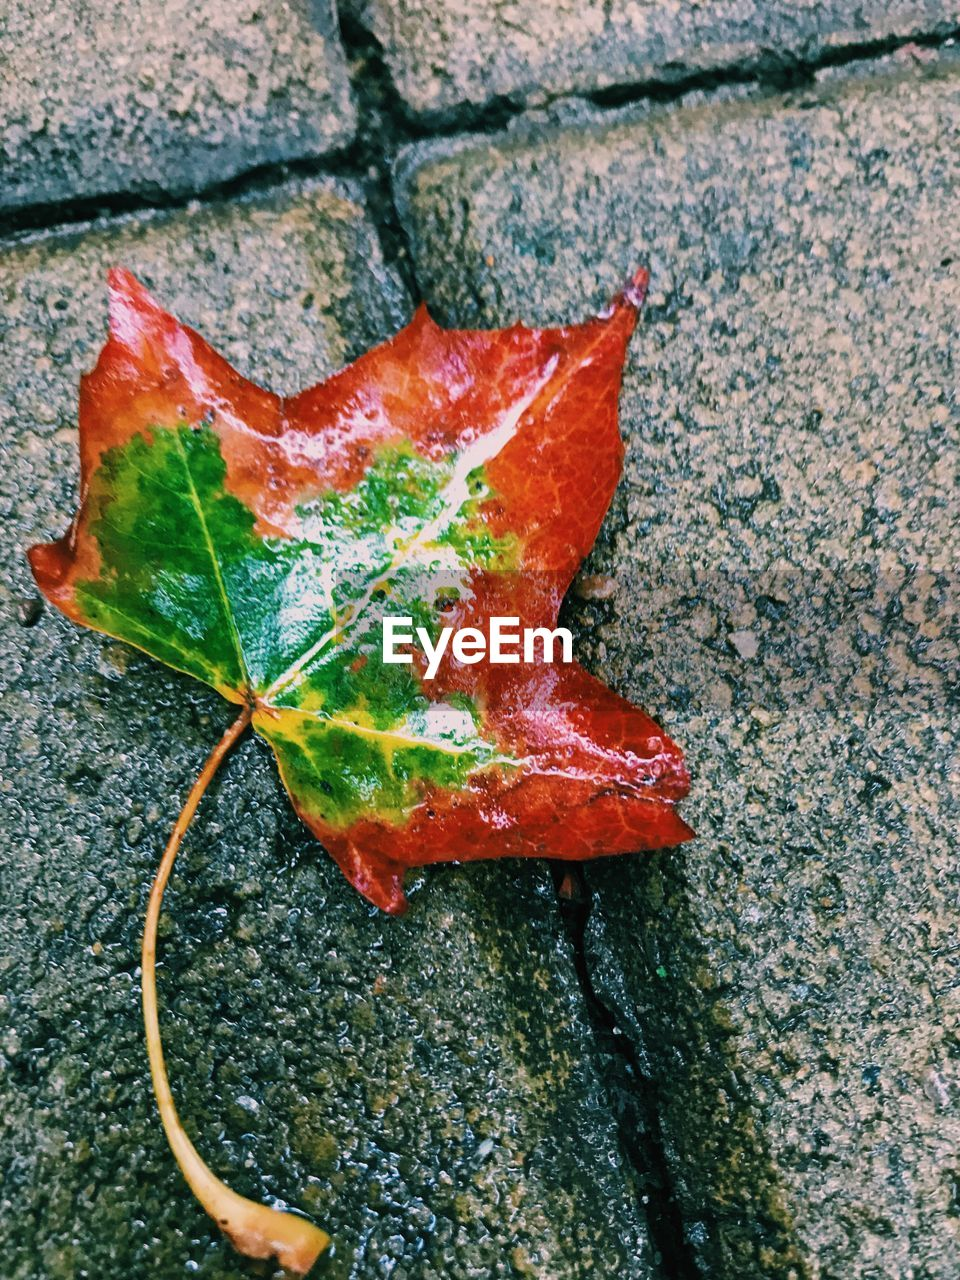 leaf, autumn, change, nature, day, outdoors, close-up, high angle view, maple leaf, beauty in nature, no people, fragility, green color, maple, red